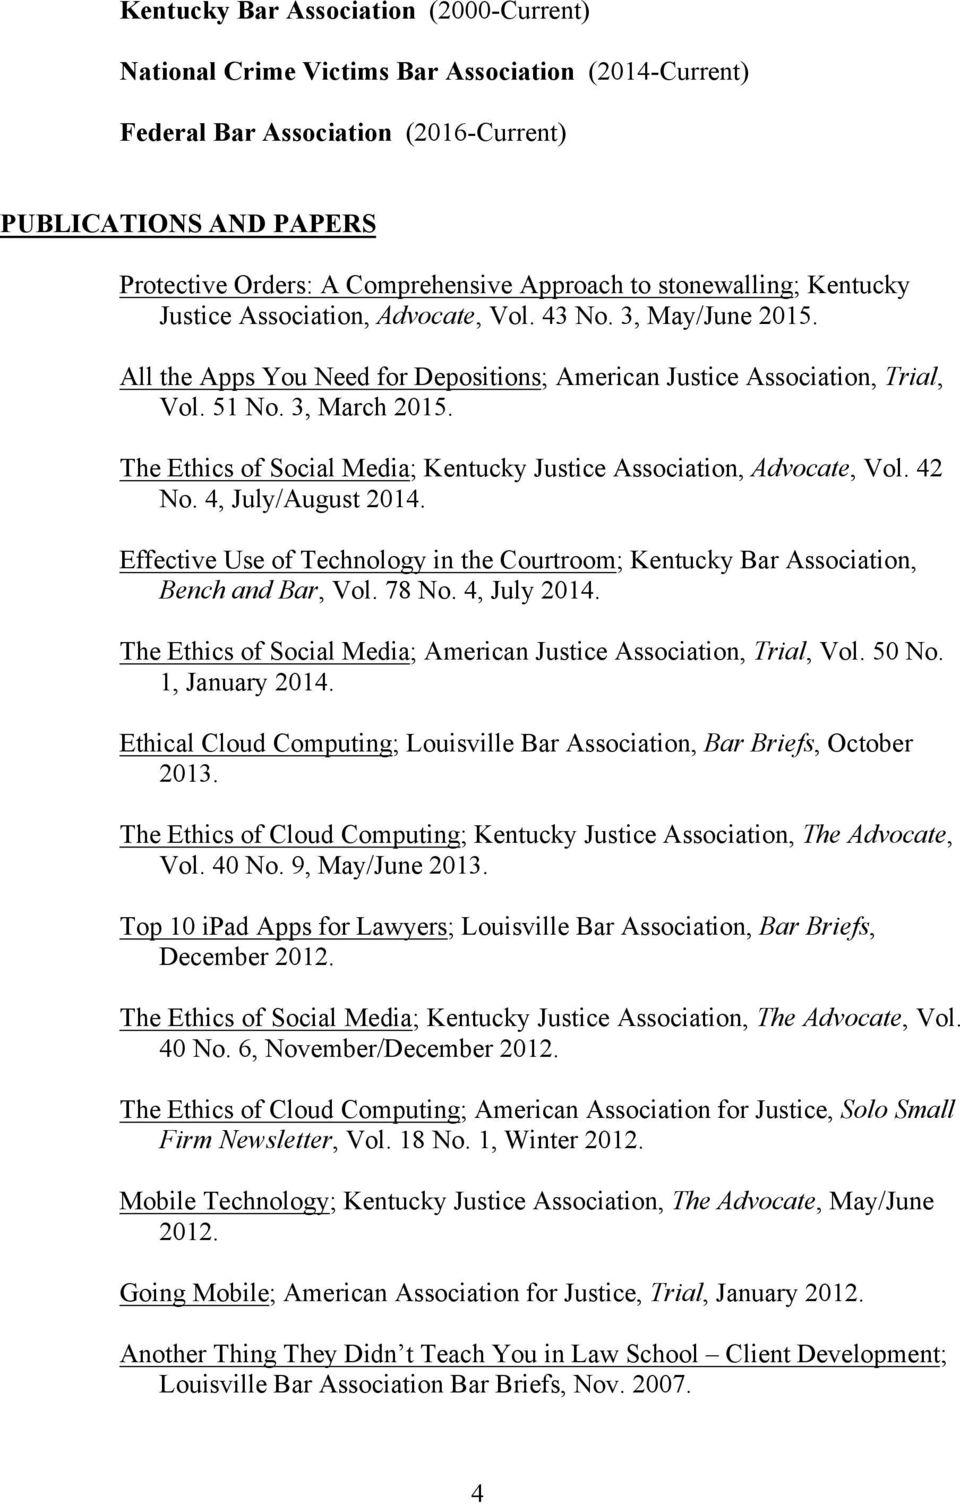 The Ethics of Social Media; Kentucky Justice Association, Advocate, Vol. 42 No. 4, July/August 2014. Effective Use of Technology in the Courtroom; Kentucky Bar Association, Bench and Bar, Vol. 78 No.